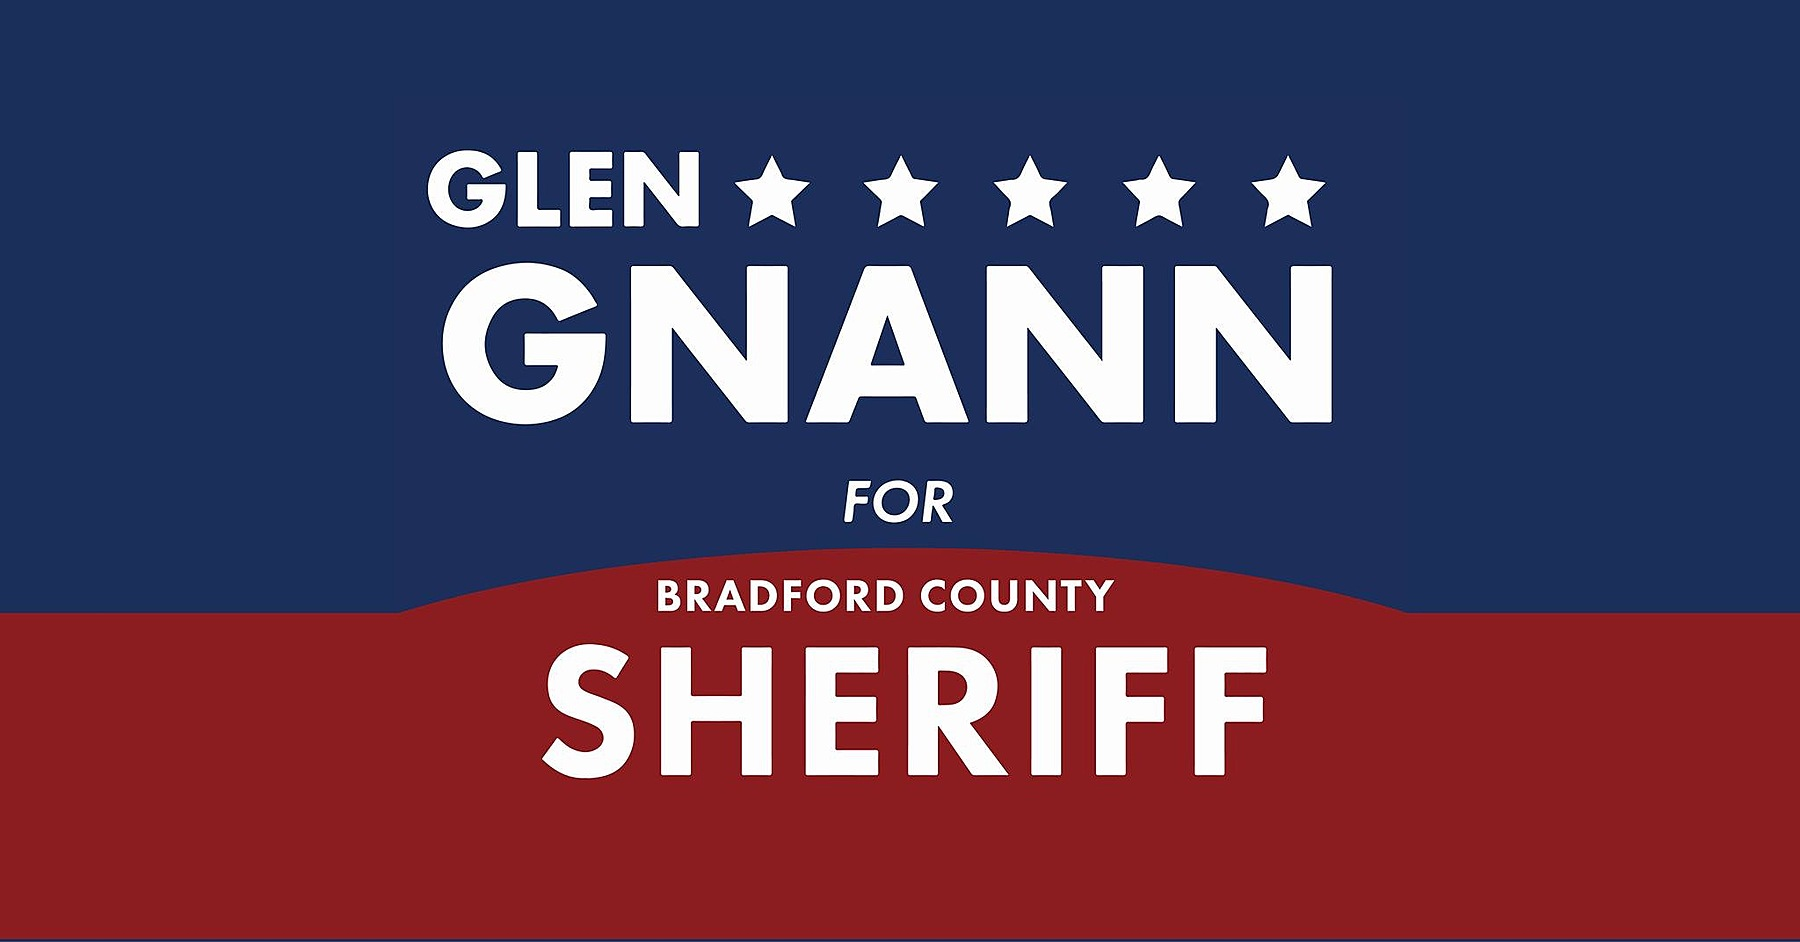 Glen Gnann for Bradford County Sheriff: General Fund